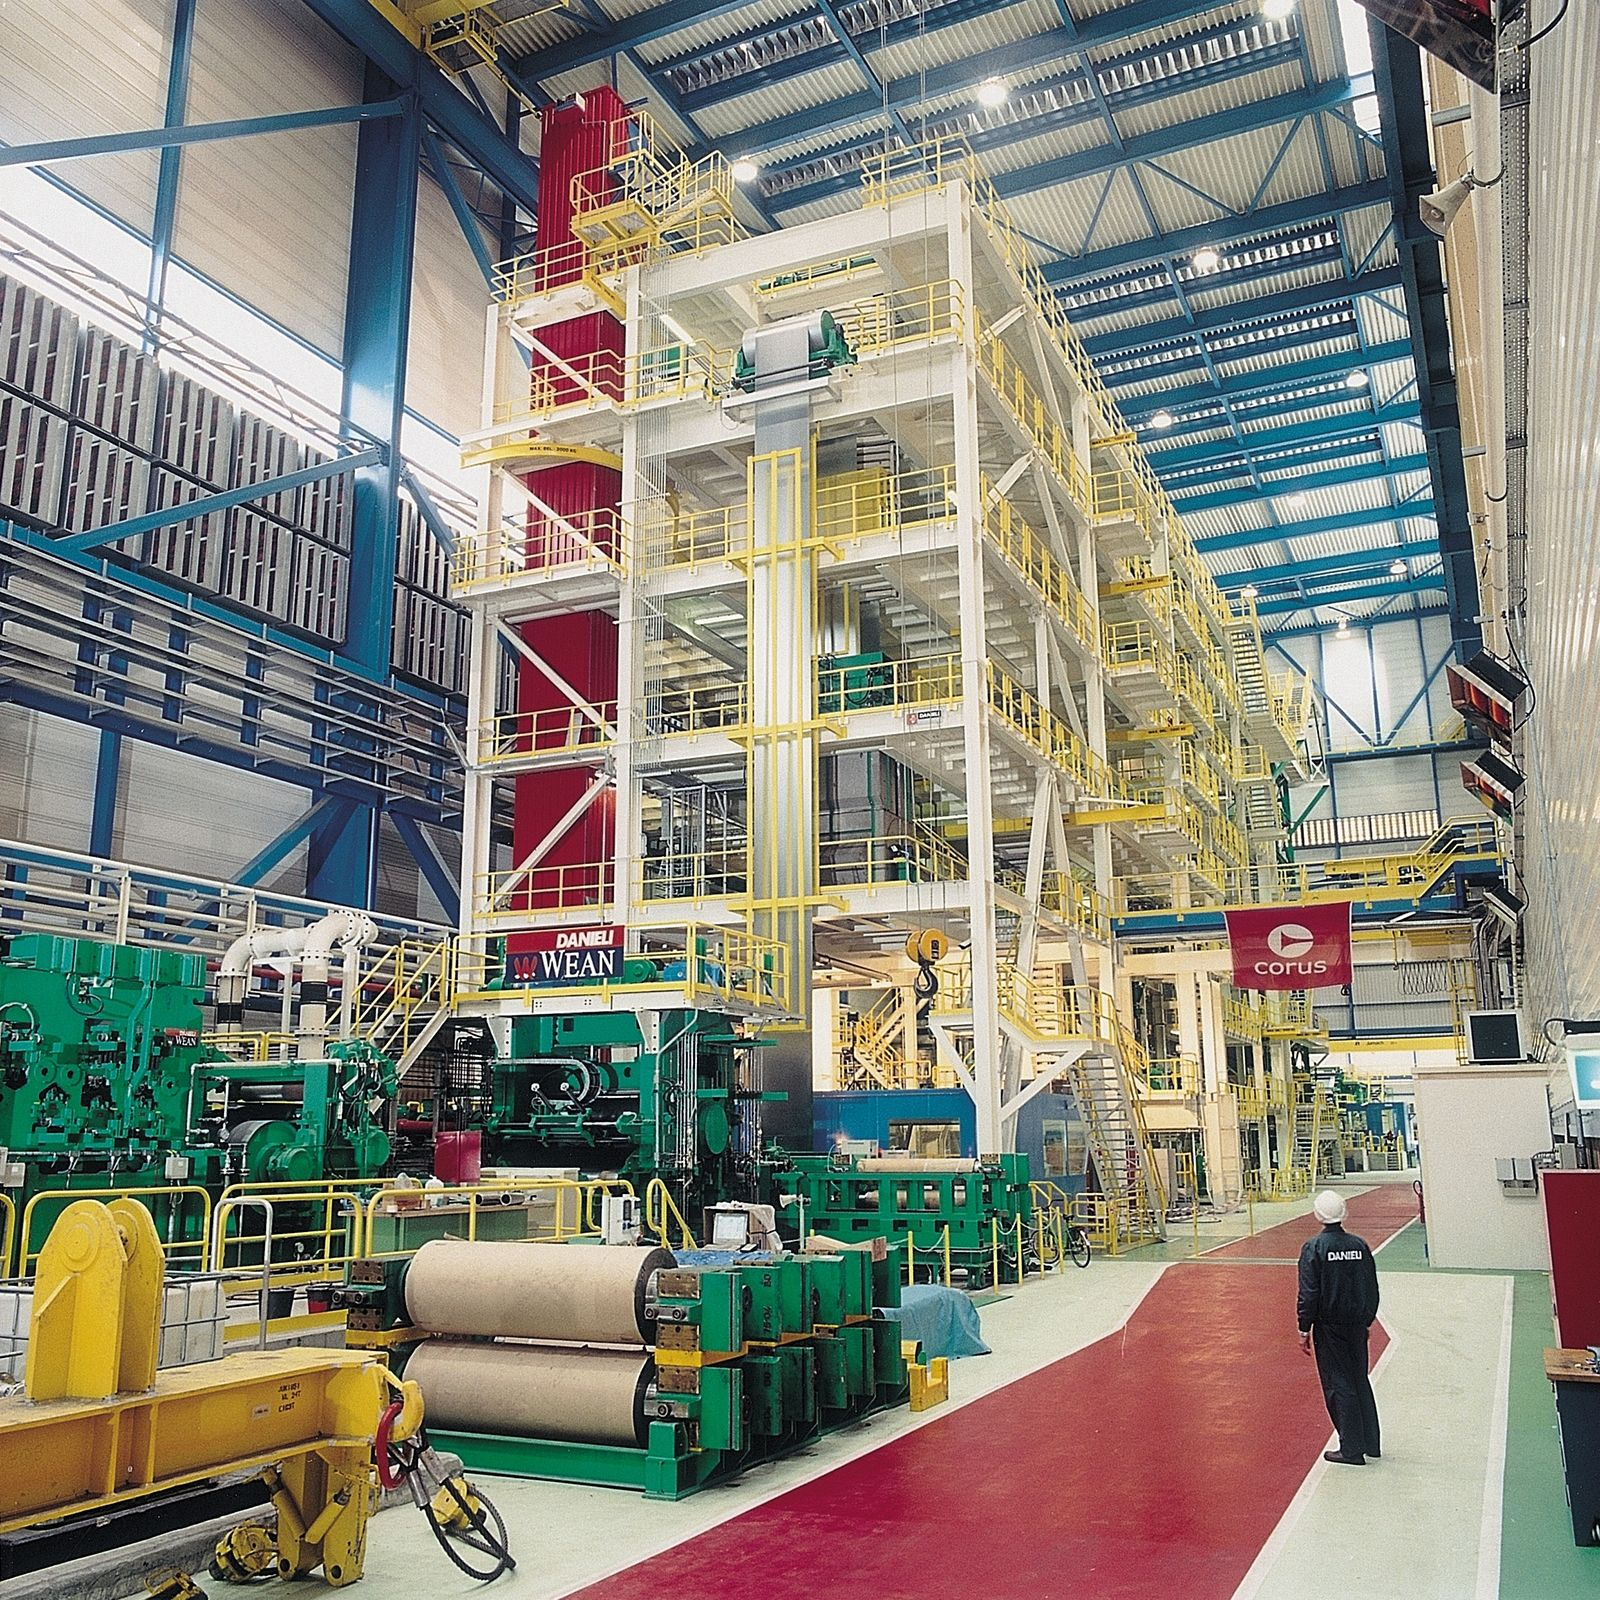 The existing hot dip galvanizing line installed by Danieli in 2000